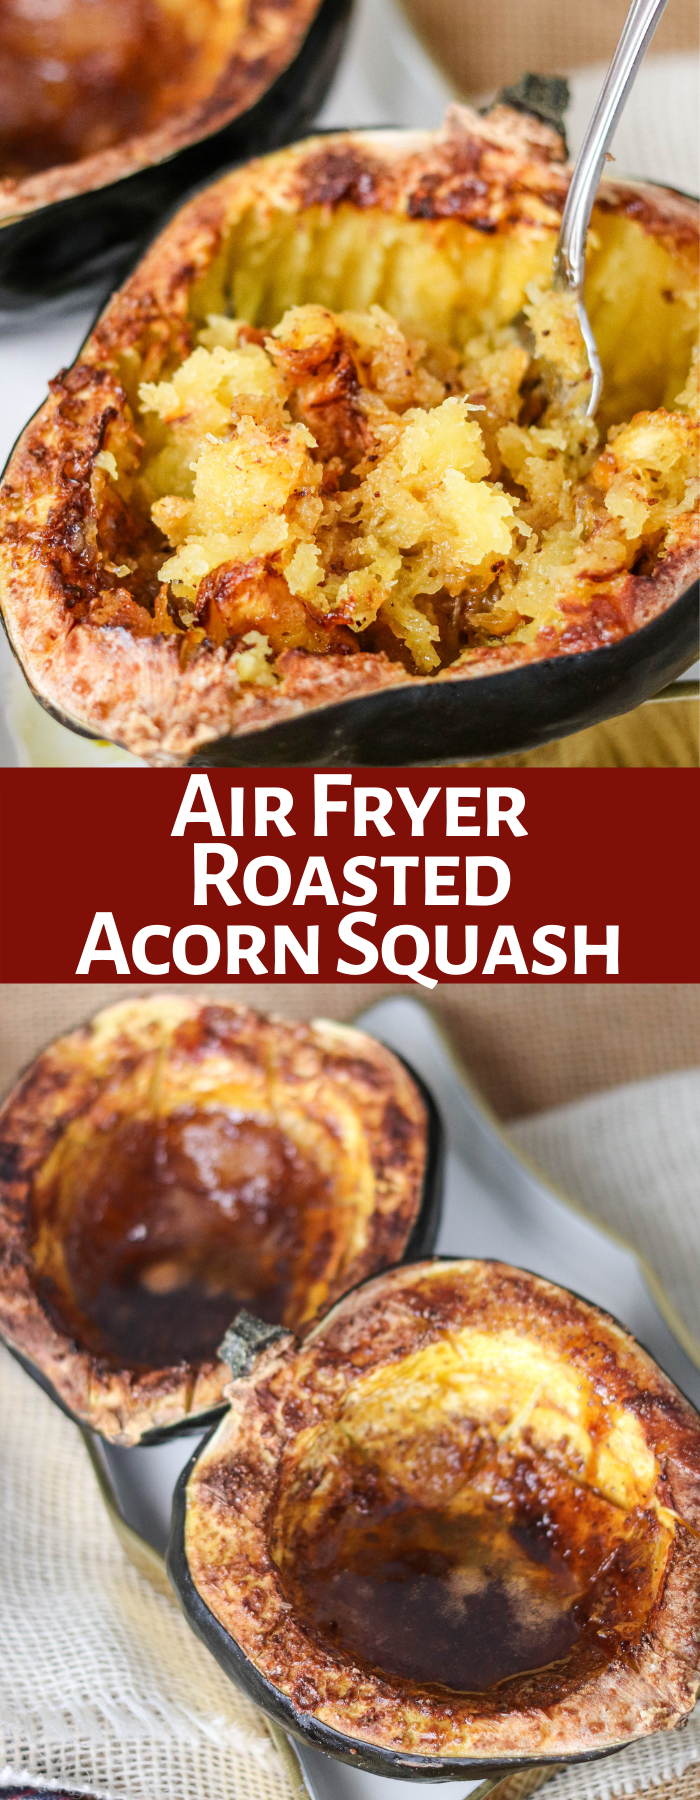 Air Fryer Acorn Squash is the perfect fall side dish or meal! It's hearty, delicious, and healthy, all while being super simple to cook in the air fryer!